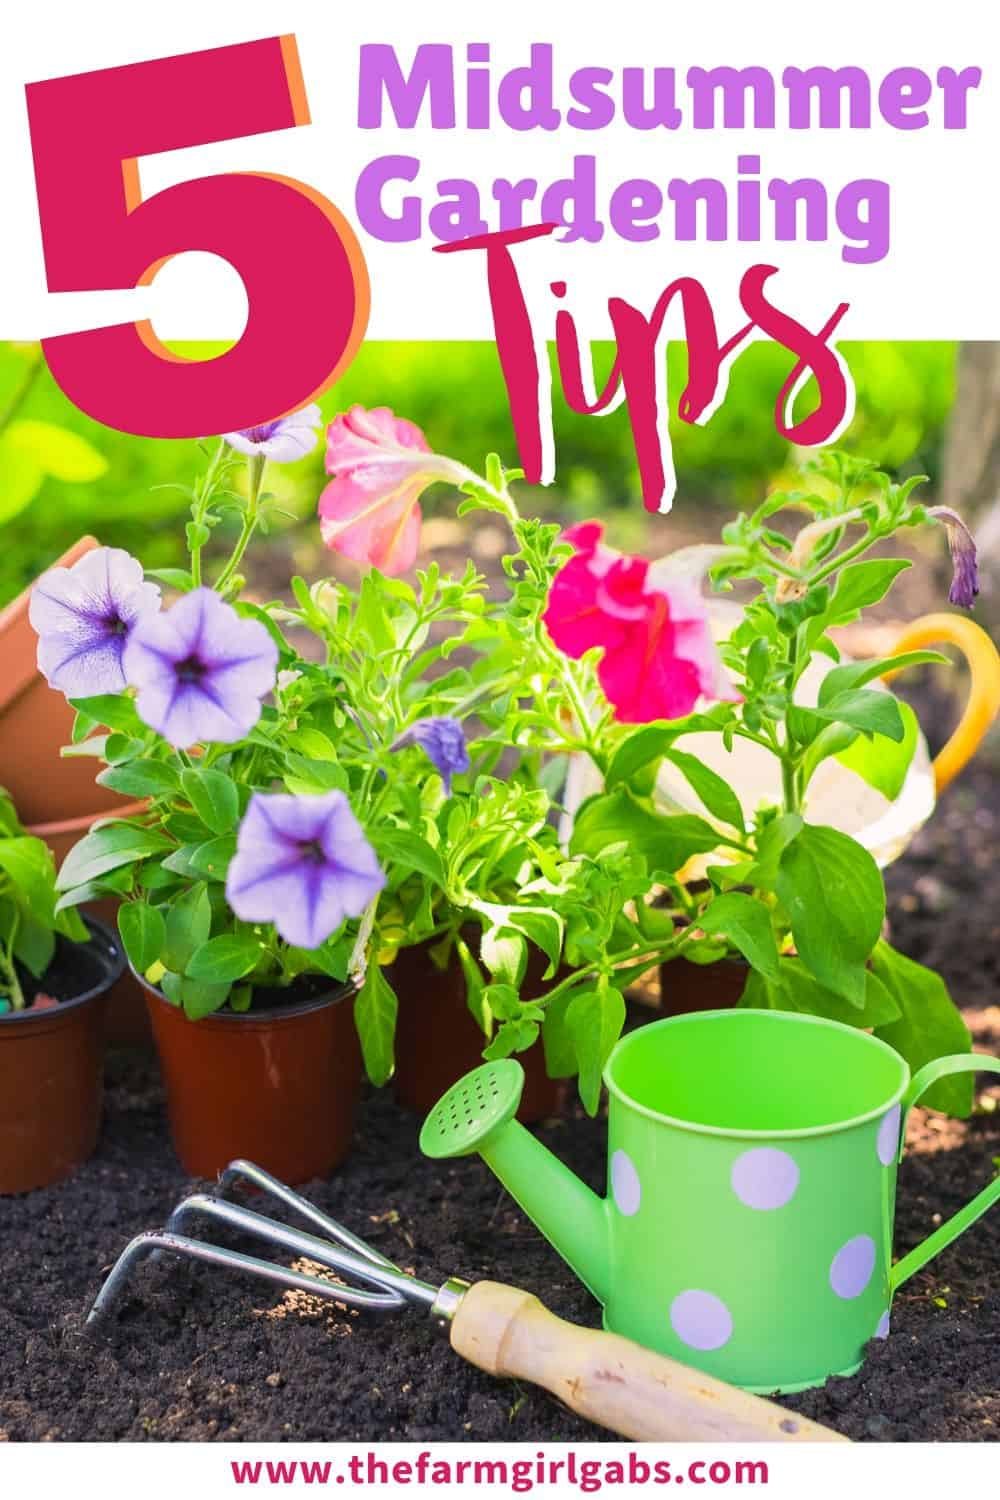 Summer is here and your gardens may be looking a little worn out from the heat. These 5 Ways to Spruce Up Your Midsummer Garden are helpful gardening tips to revive your summer garden! #gardeningtips #gardeningideas #plants #flowers